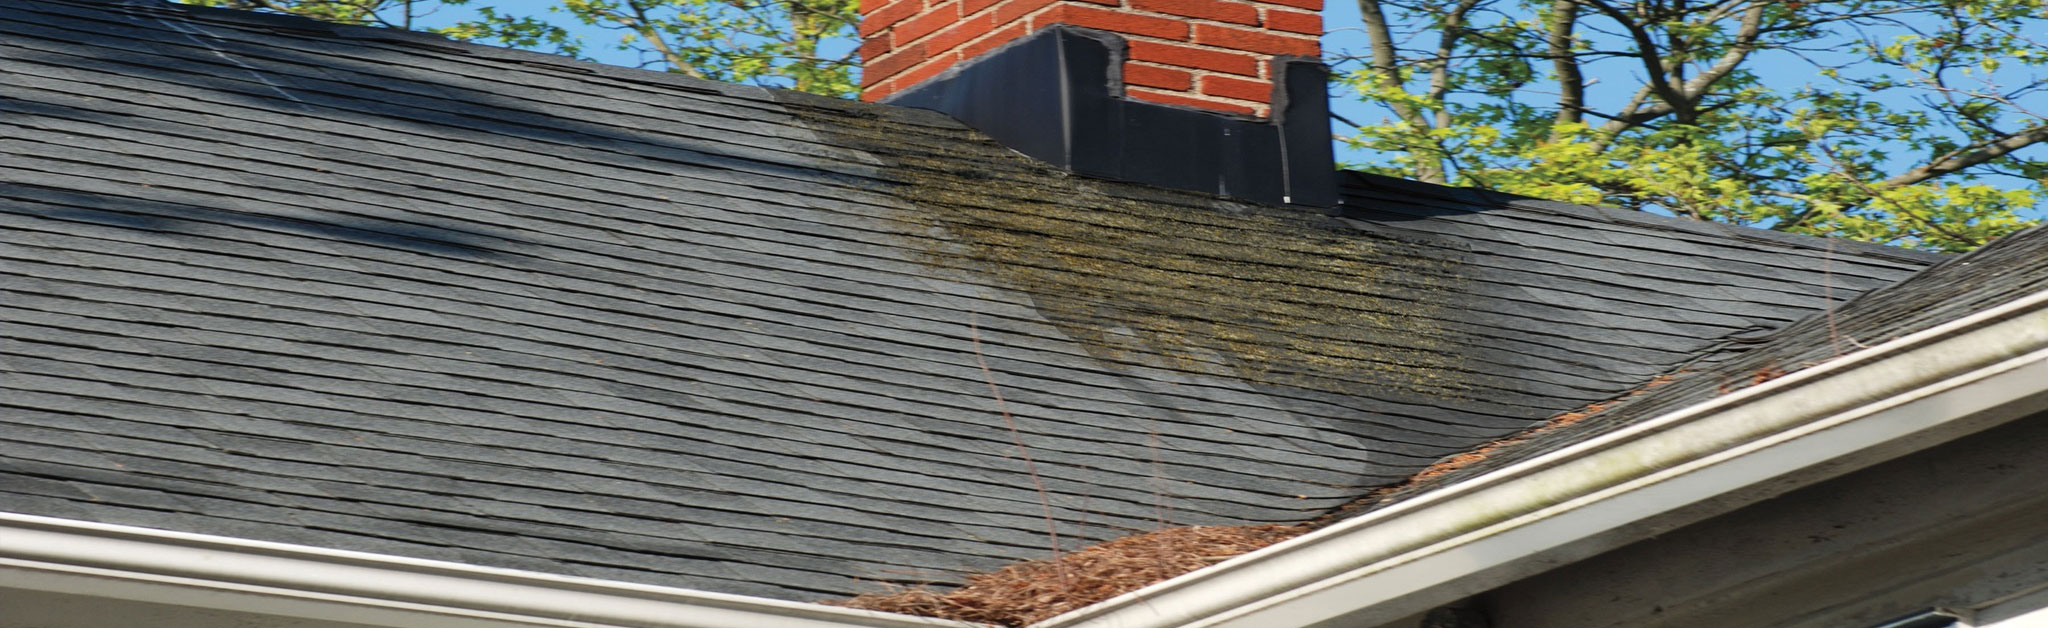 Donahoo Roofing Images